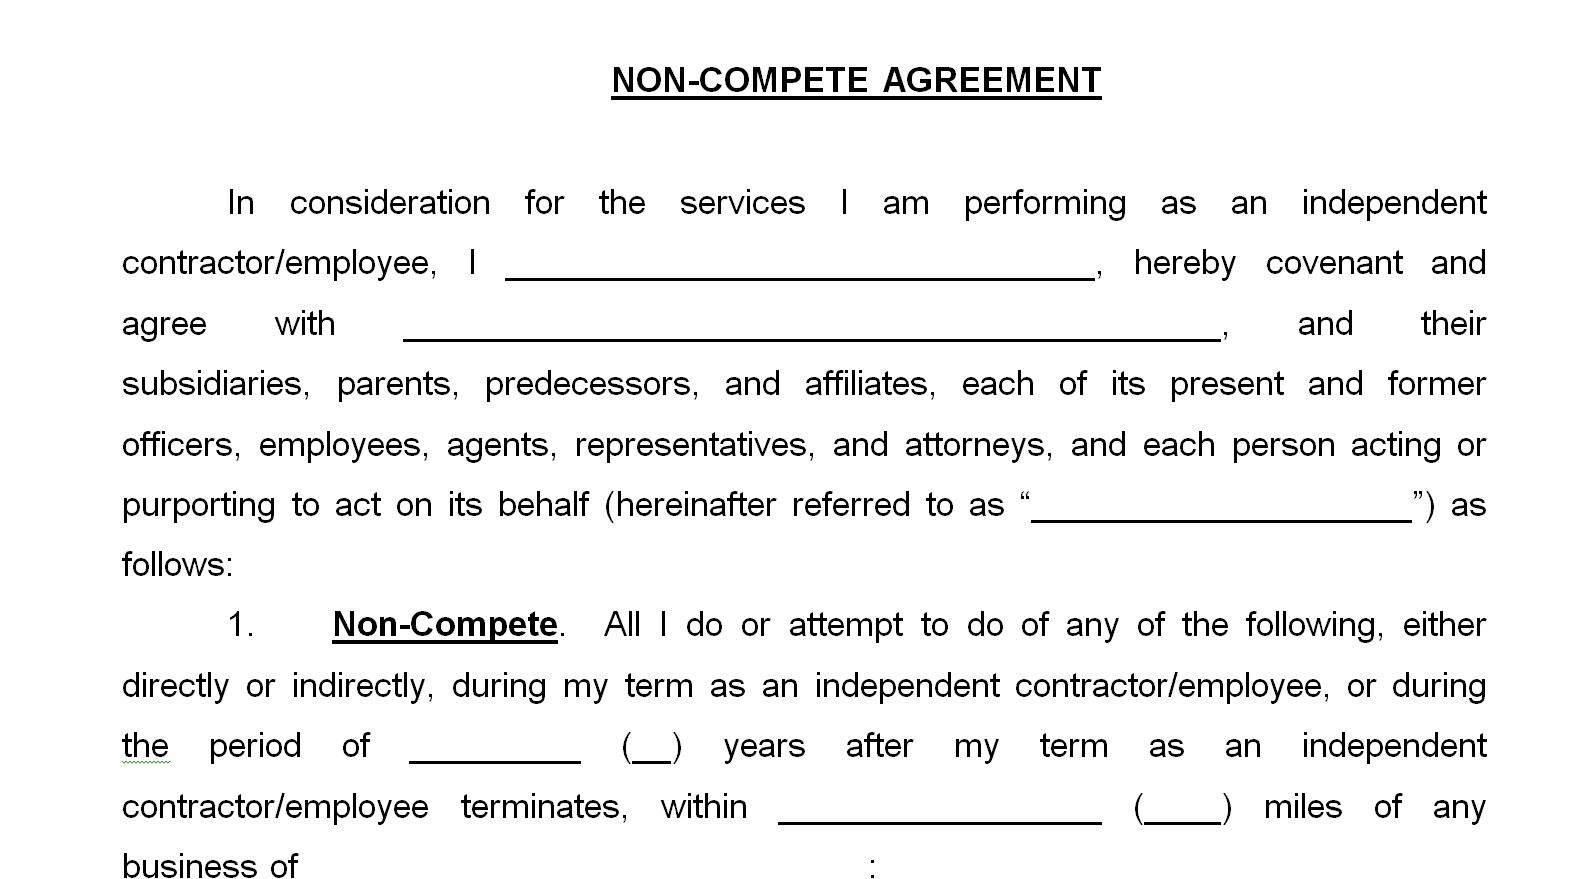 radio s non compete contracts dicktaylorblog